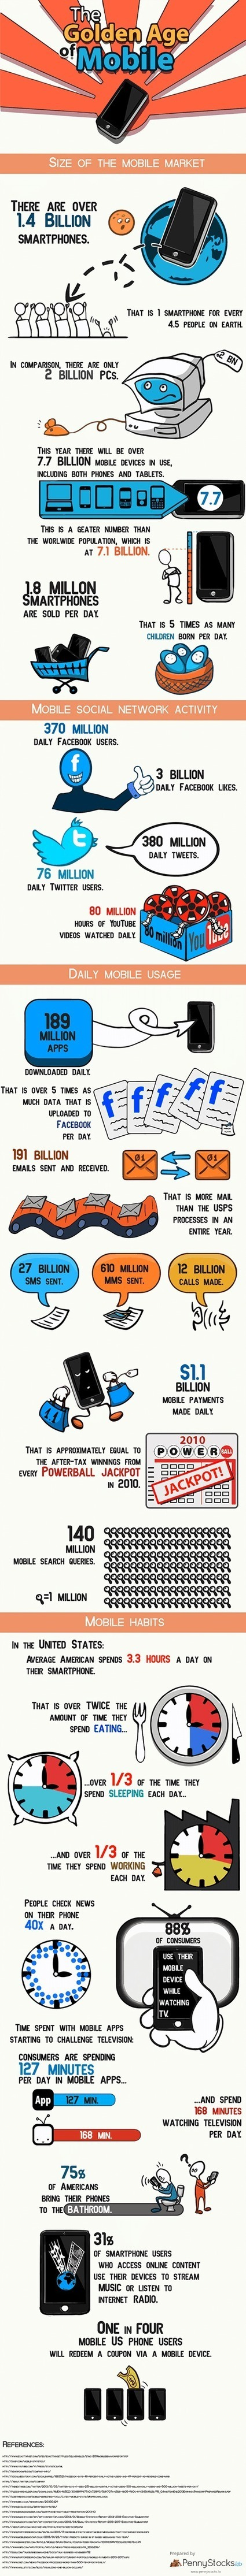 7.7 Billion Mobile Devices Among 7.1 Billion People By The End Of 2014 | Digital-News on Scoop.it today | Scoop.it